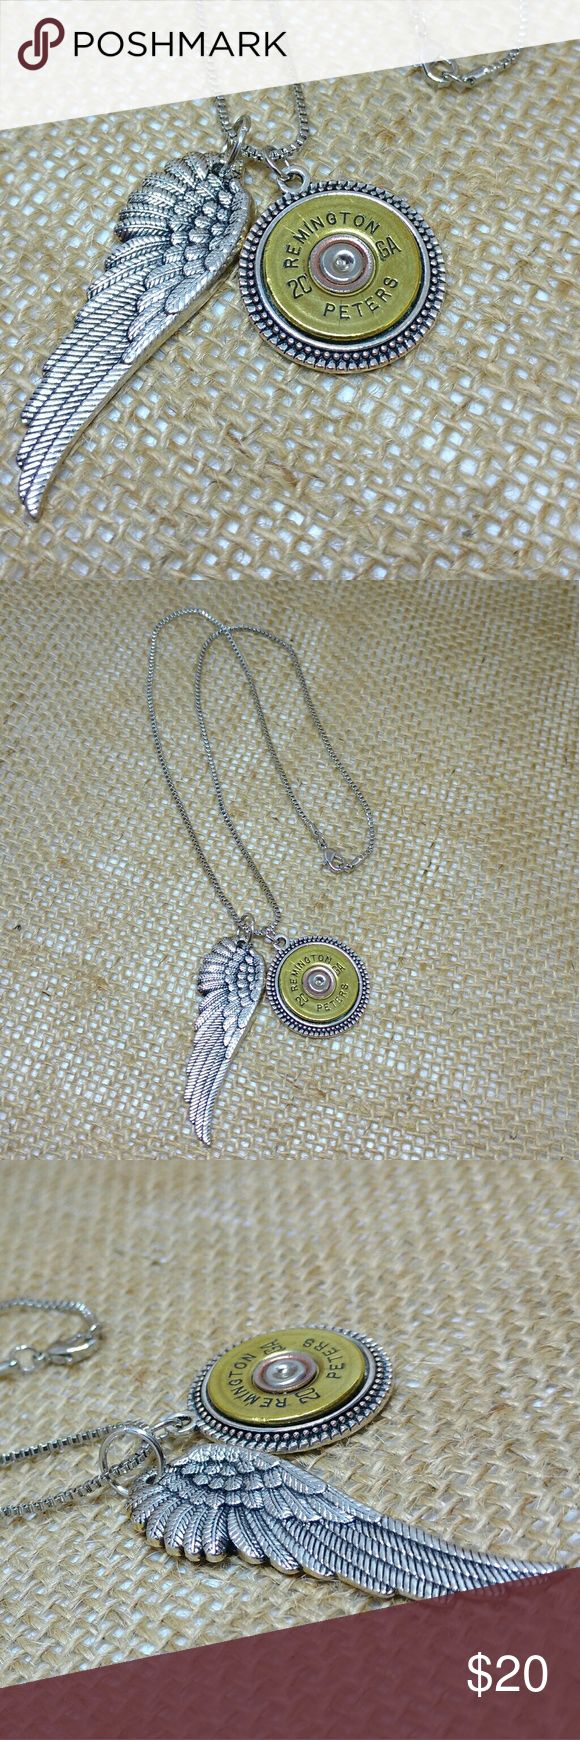 Angel Wing Shotgun Shell Necklace Large silver angel wing with a real 20-gauge Remington shotgun shell handcut and polished and placed on an 18-inch silver box chain.  Wing is 2 x 3/4 inches.  Shotgun shell pendant is 1-inch diameter.    Handmade by me, made in USA, variations available upon request. Handmade Jewelry Necklaces